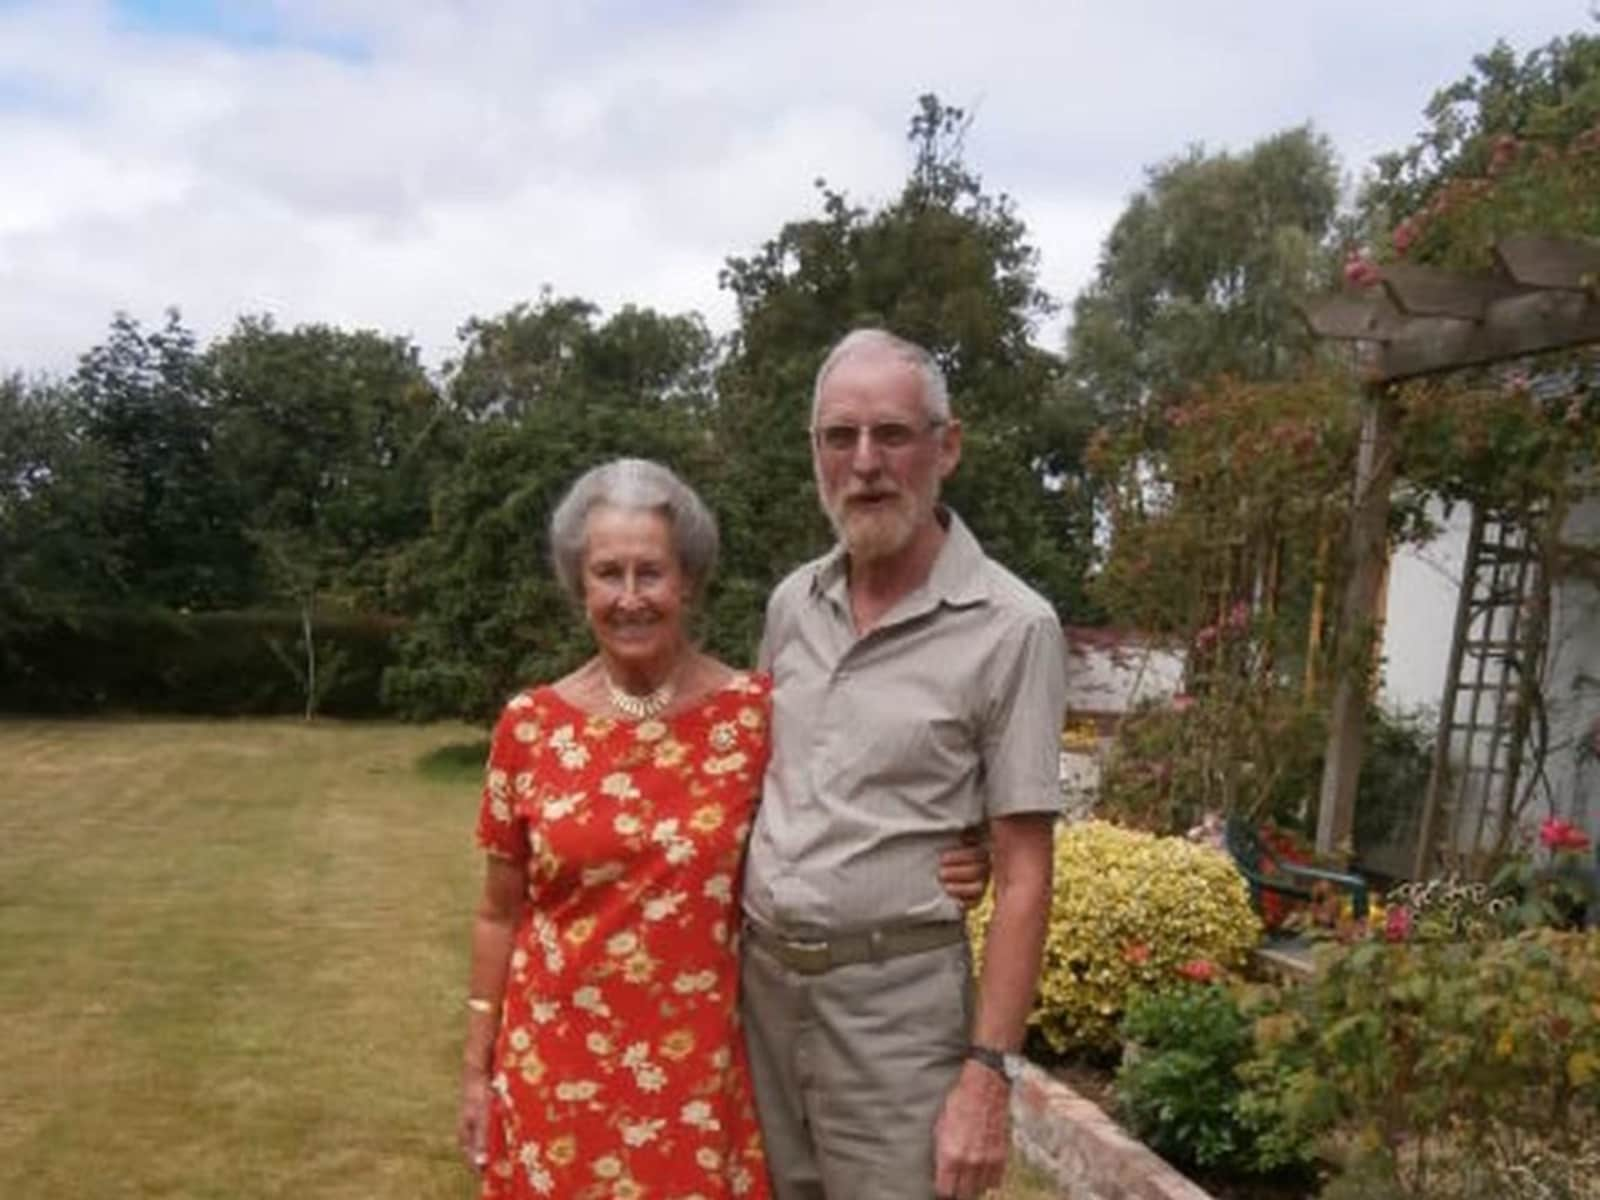 Pam & Roger from Exeter, United Kingdom